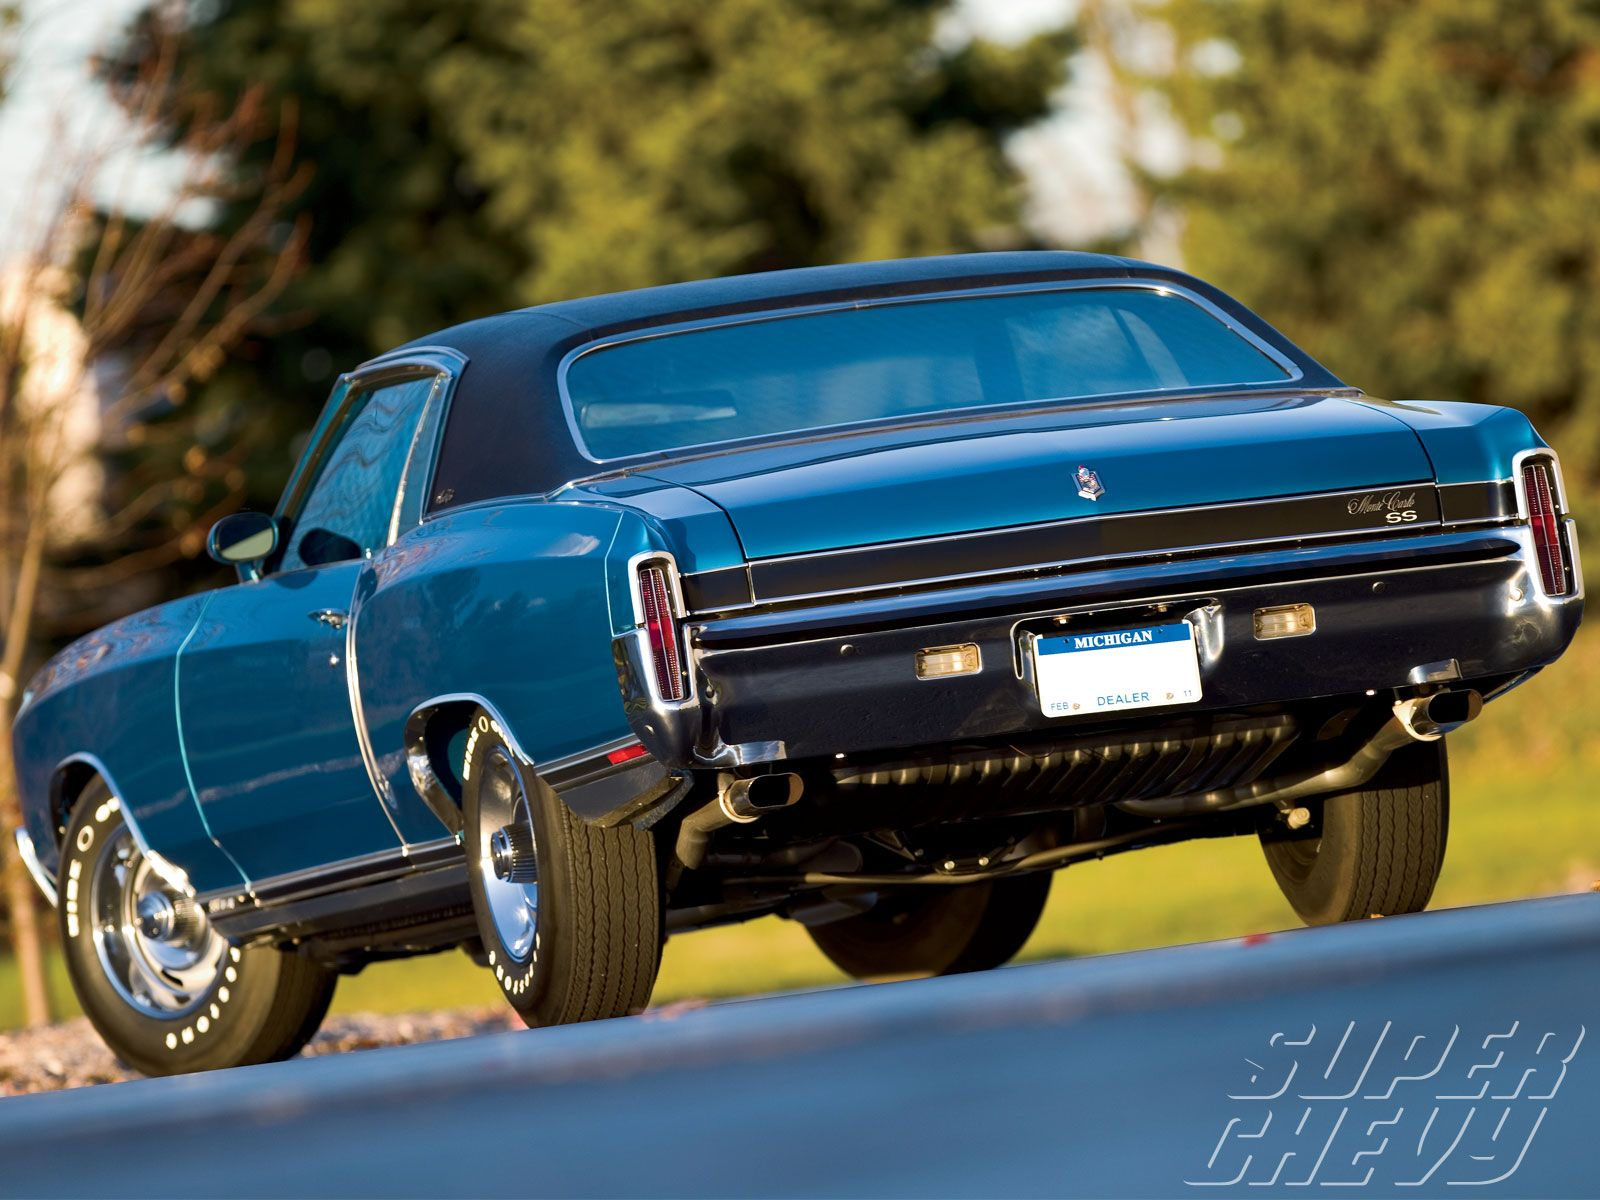 1971 Monte Carlo But Navy Blue With Leather Interior And Swivel Bucket Seats We Had This Once Chevrolet Monte Carlo Chevy Monte Carlo Chevy Muscle Cars